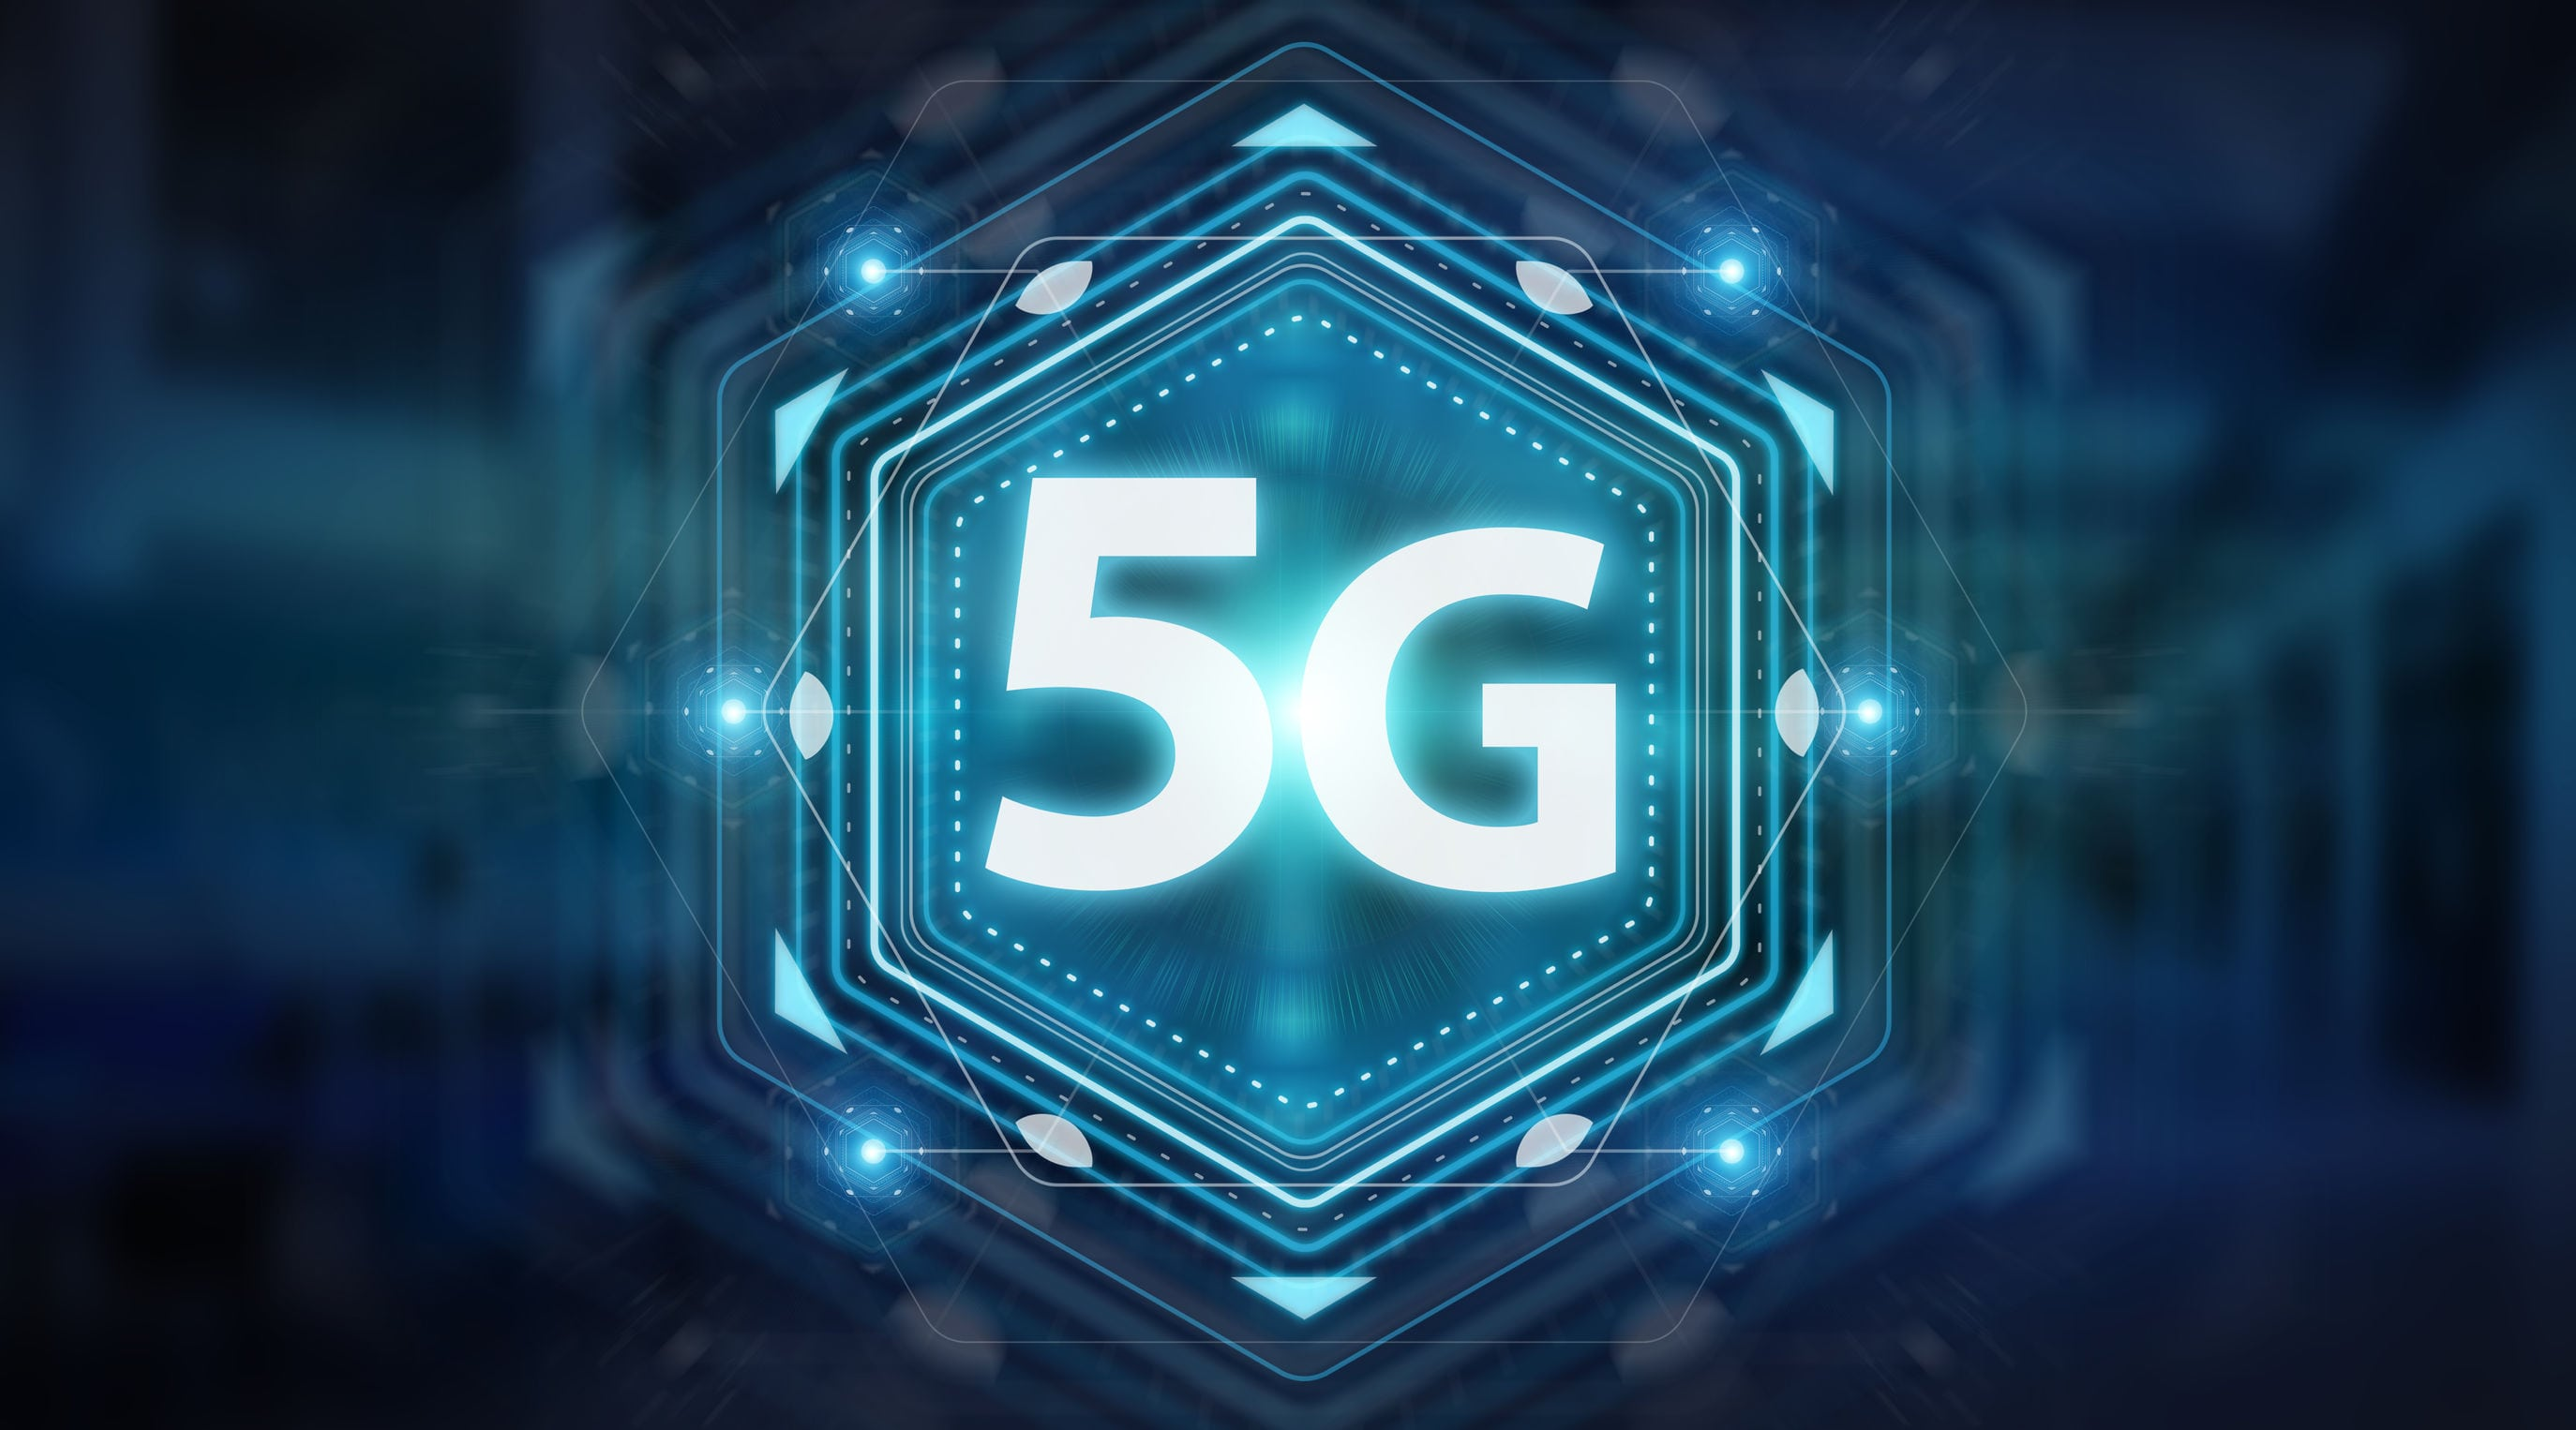 us-tech-china-leads-us-in-5g-trump-answers-the-challenge